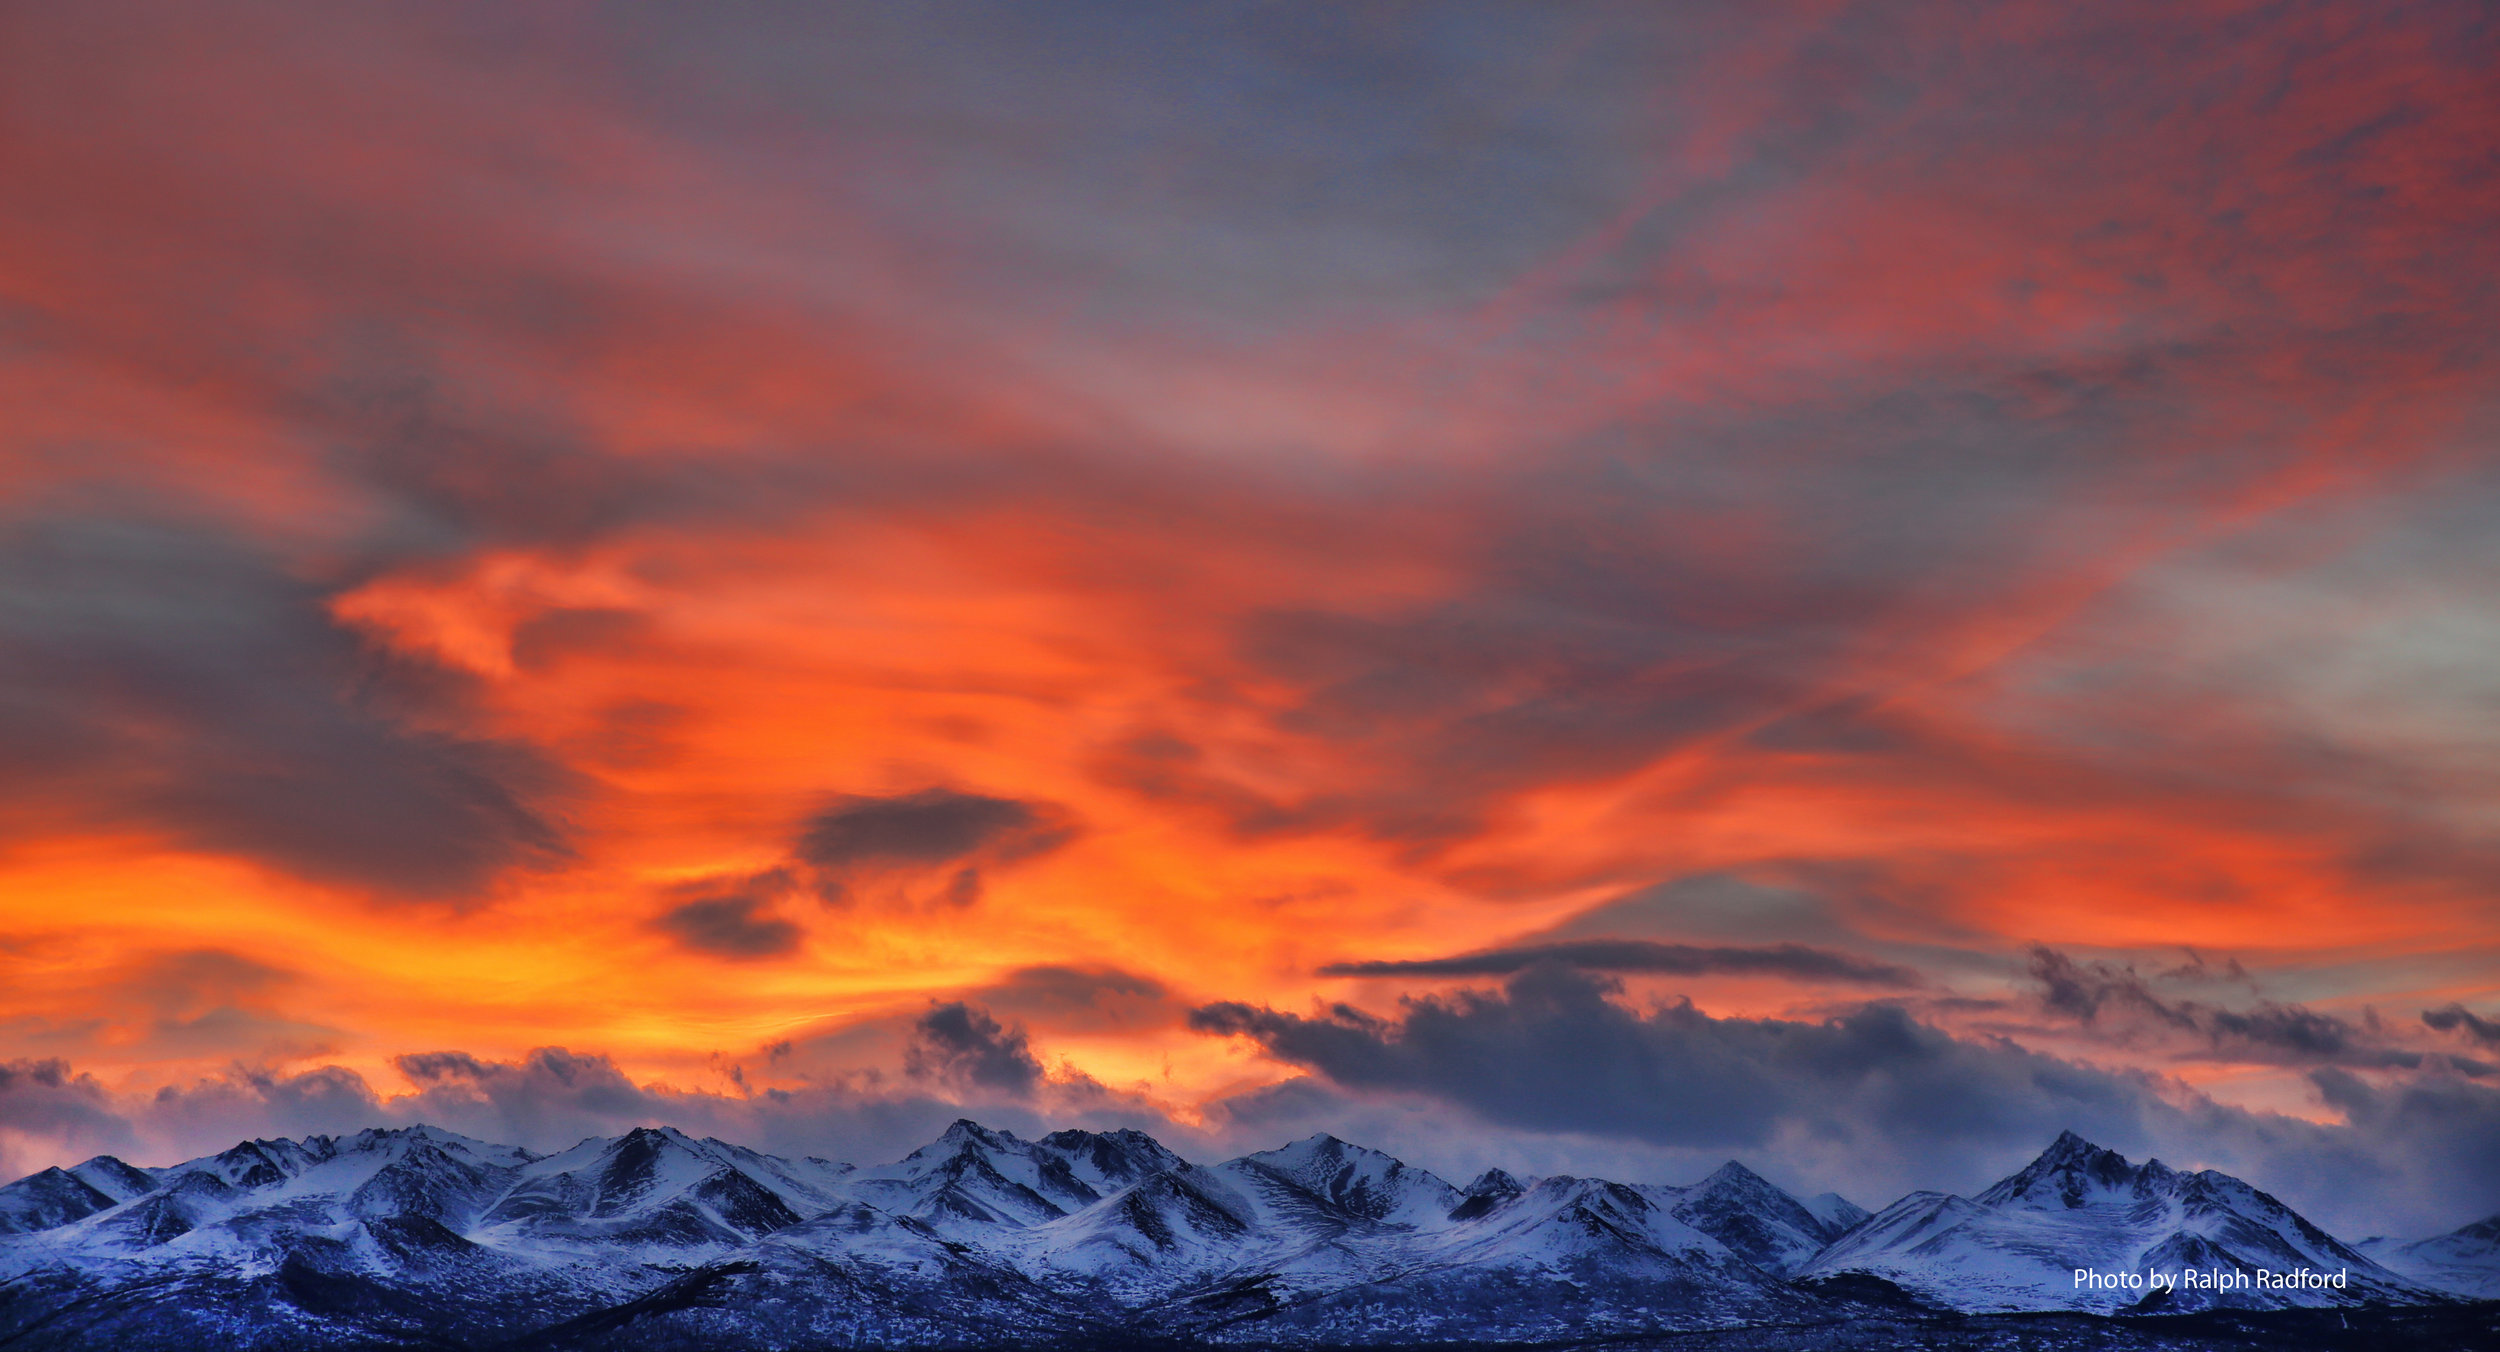 sunrise from airport ak 1 signed.jpg